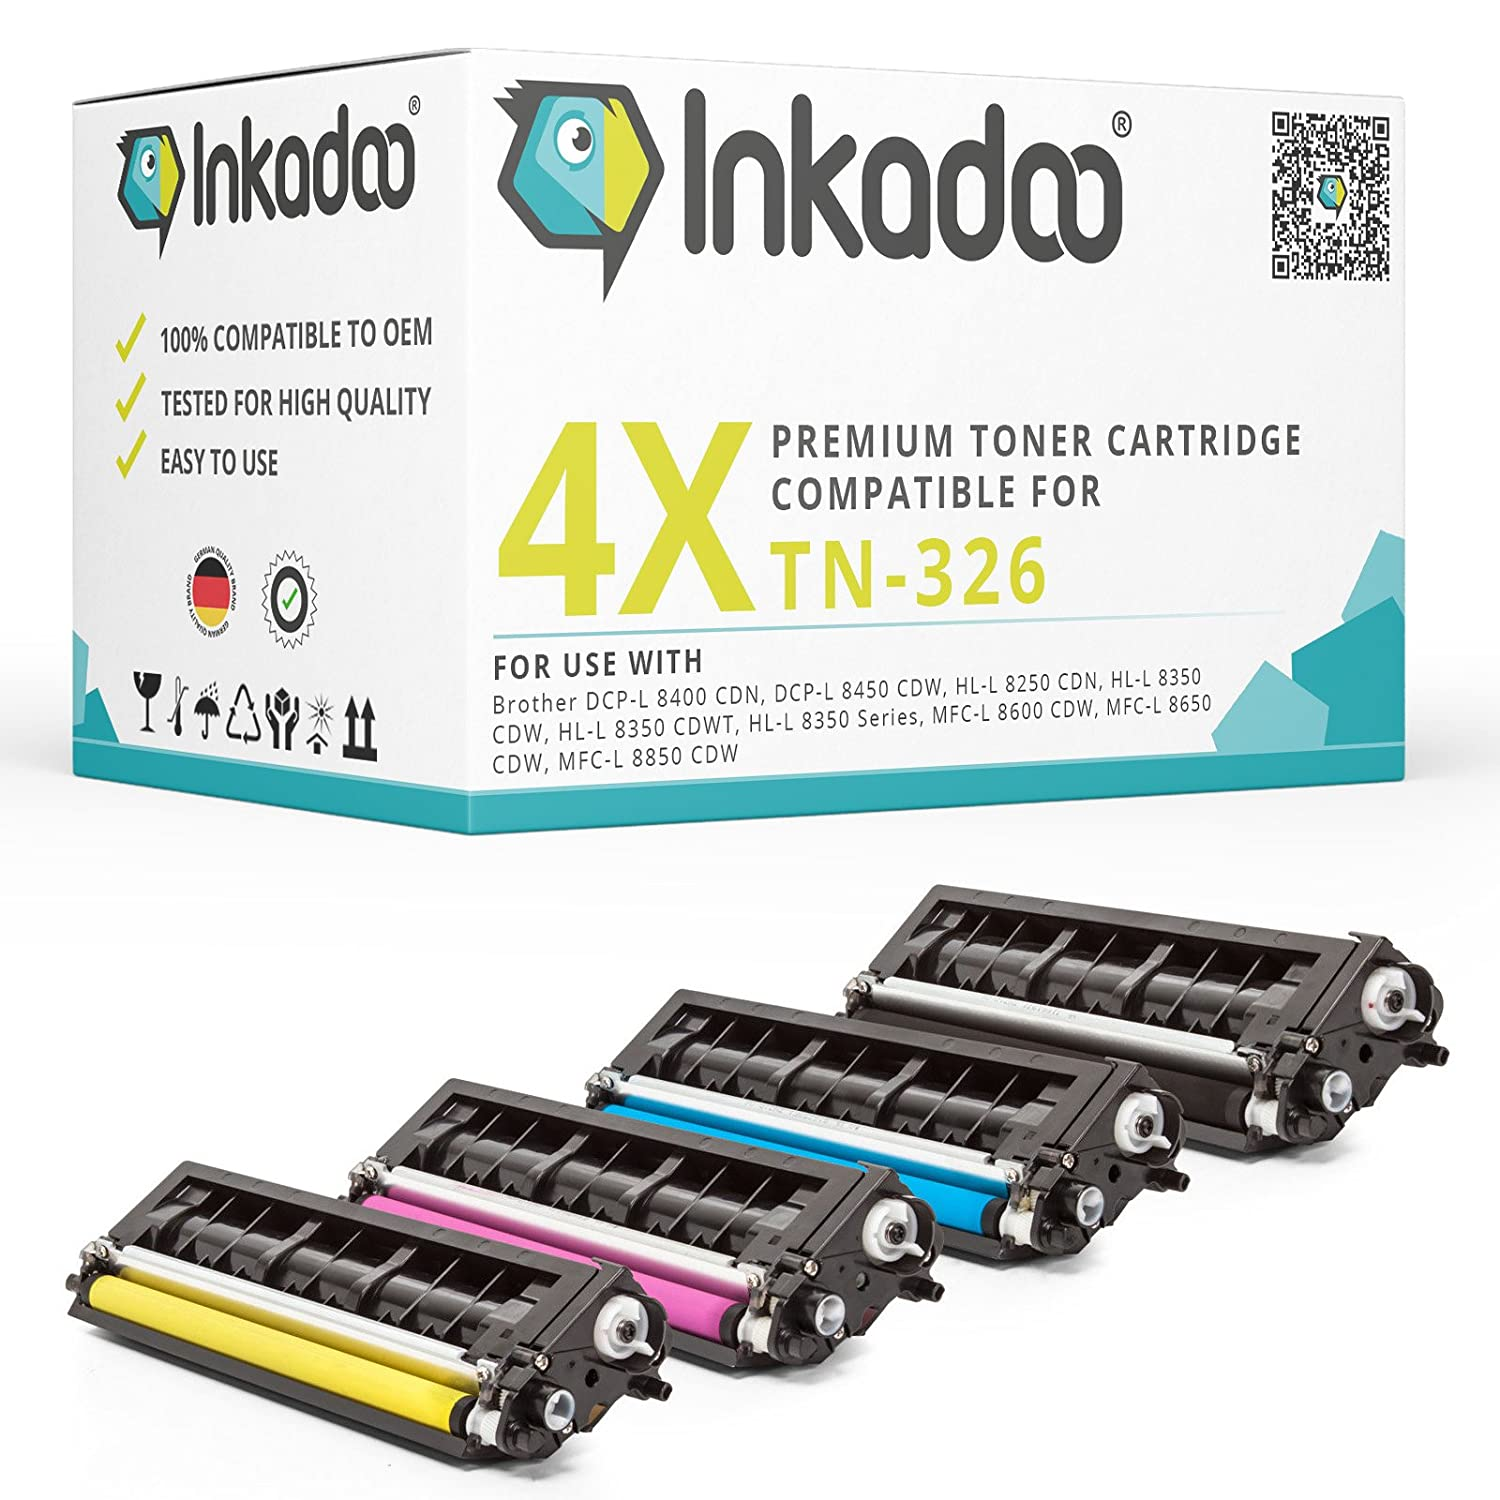 Inka Doo® - Tóner compatible con Brother MFC L 8850 CDW sustituye ...